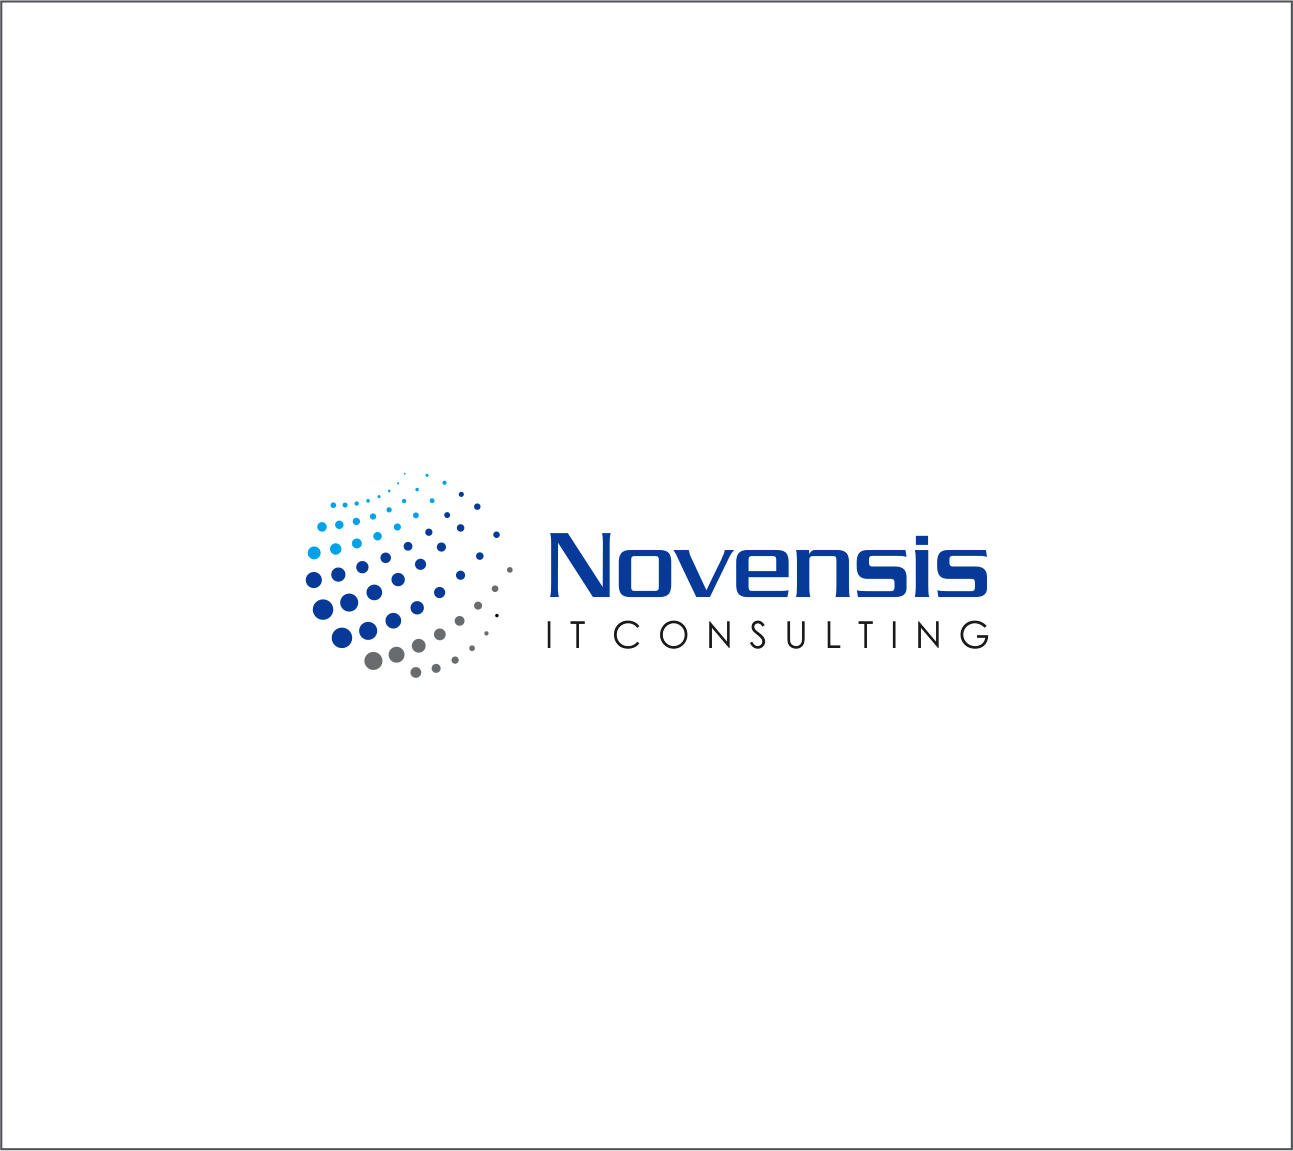 Logo Design by Armada Jamaluddin - Entry No. 181 in the Logo Design Contest Novensis Logo Design.